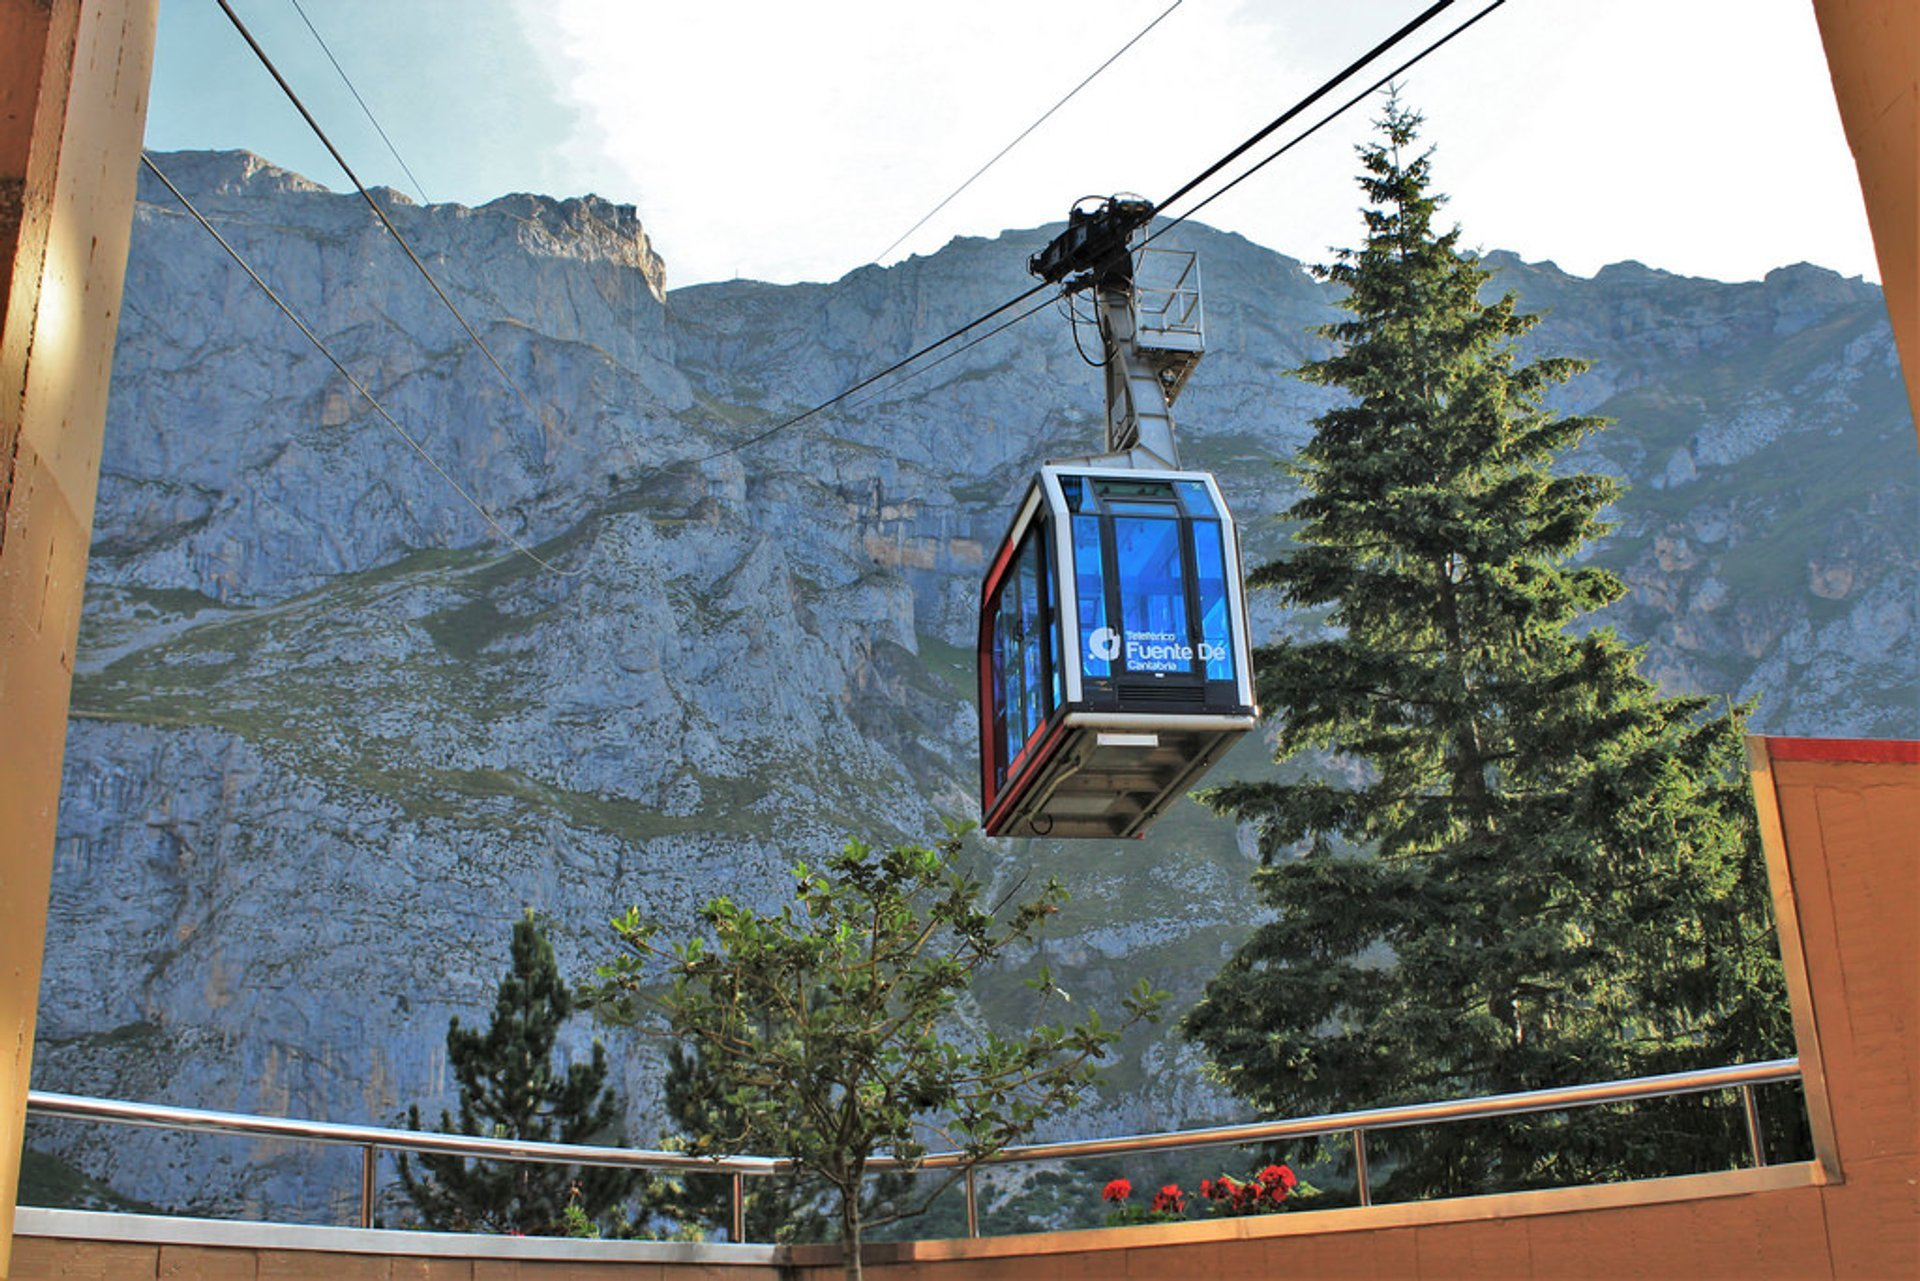 Fuente Dé Cable Car in Spain 2020 - Best Time